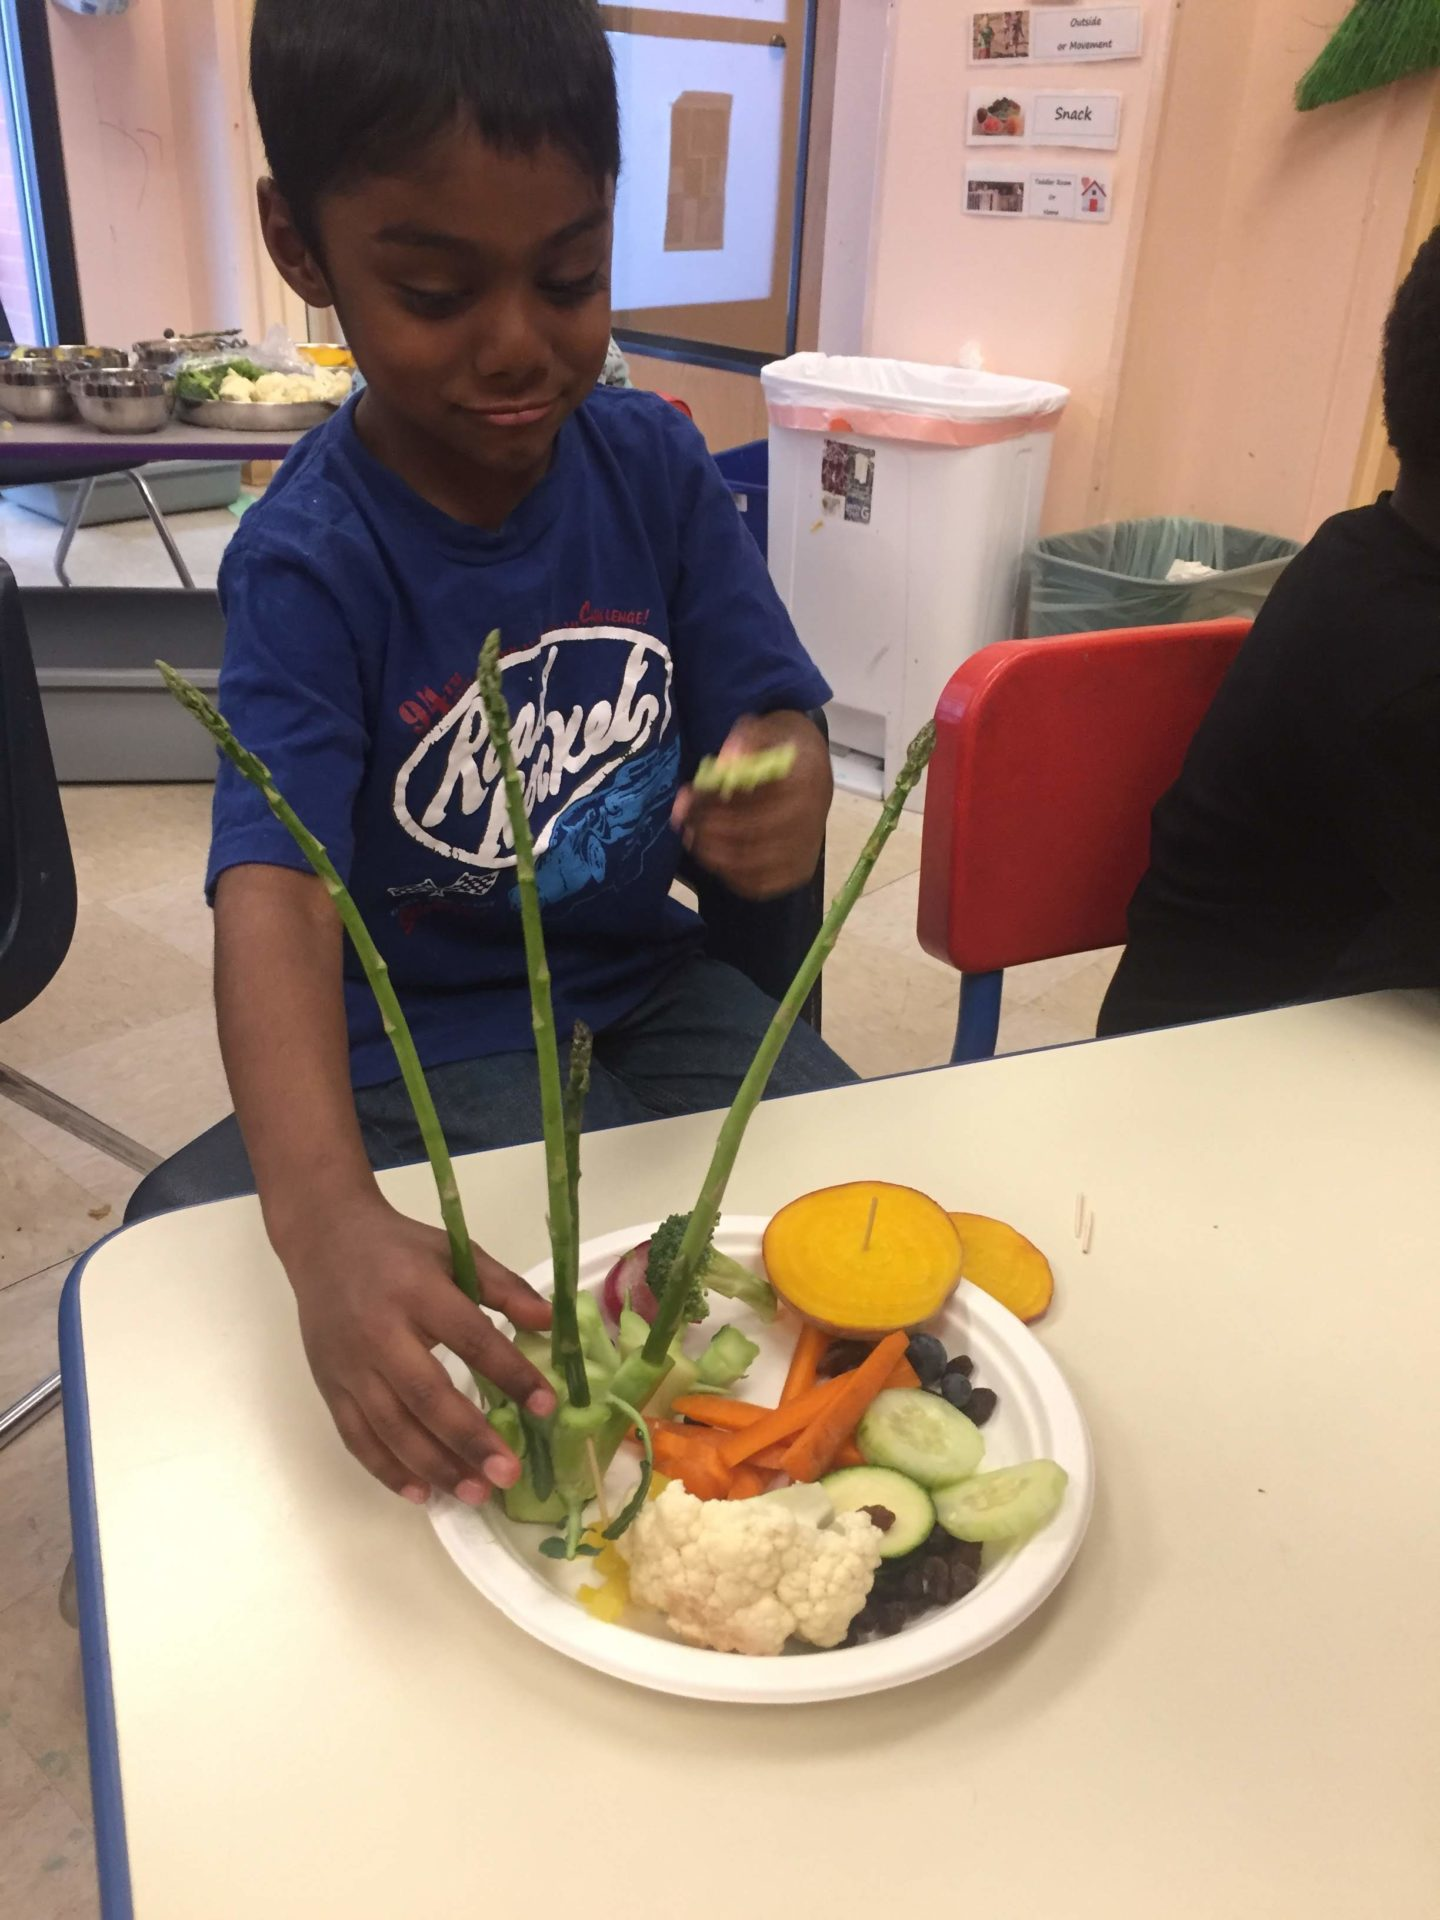 Young boy arranging veggies on a plate.